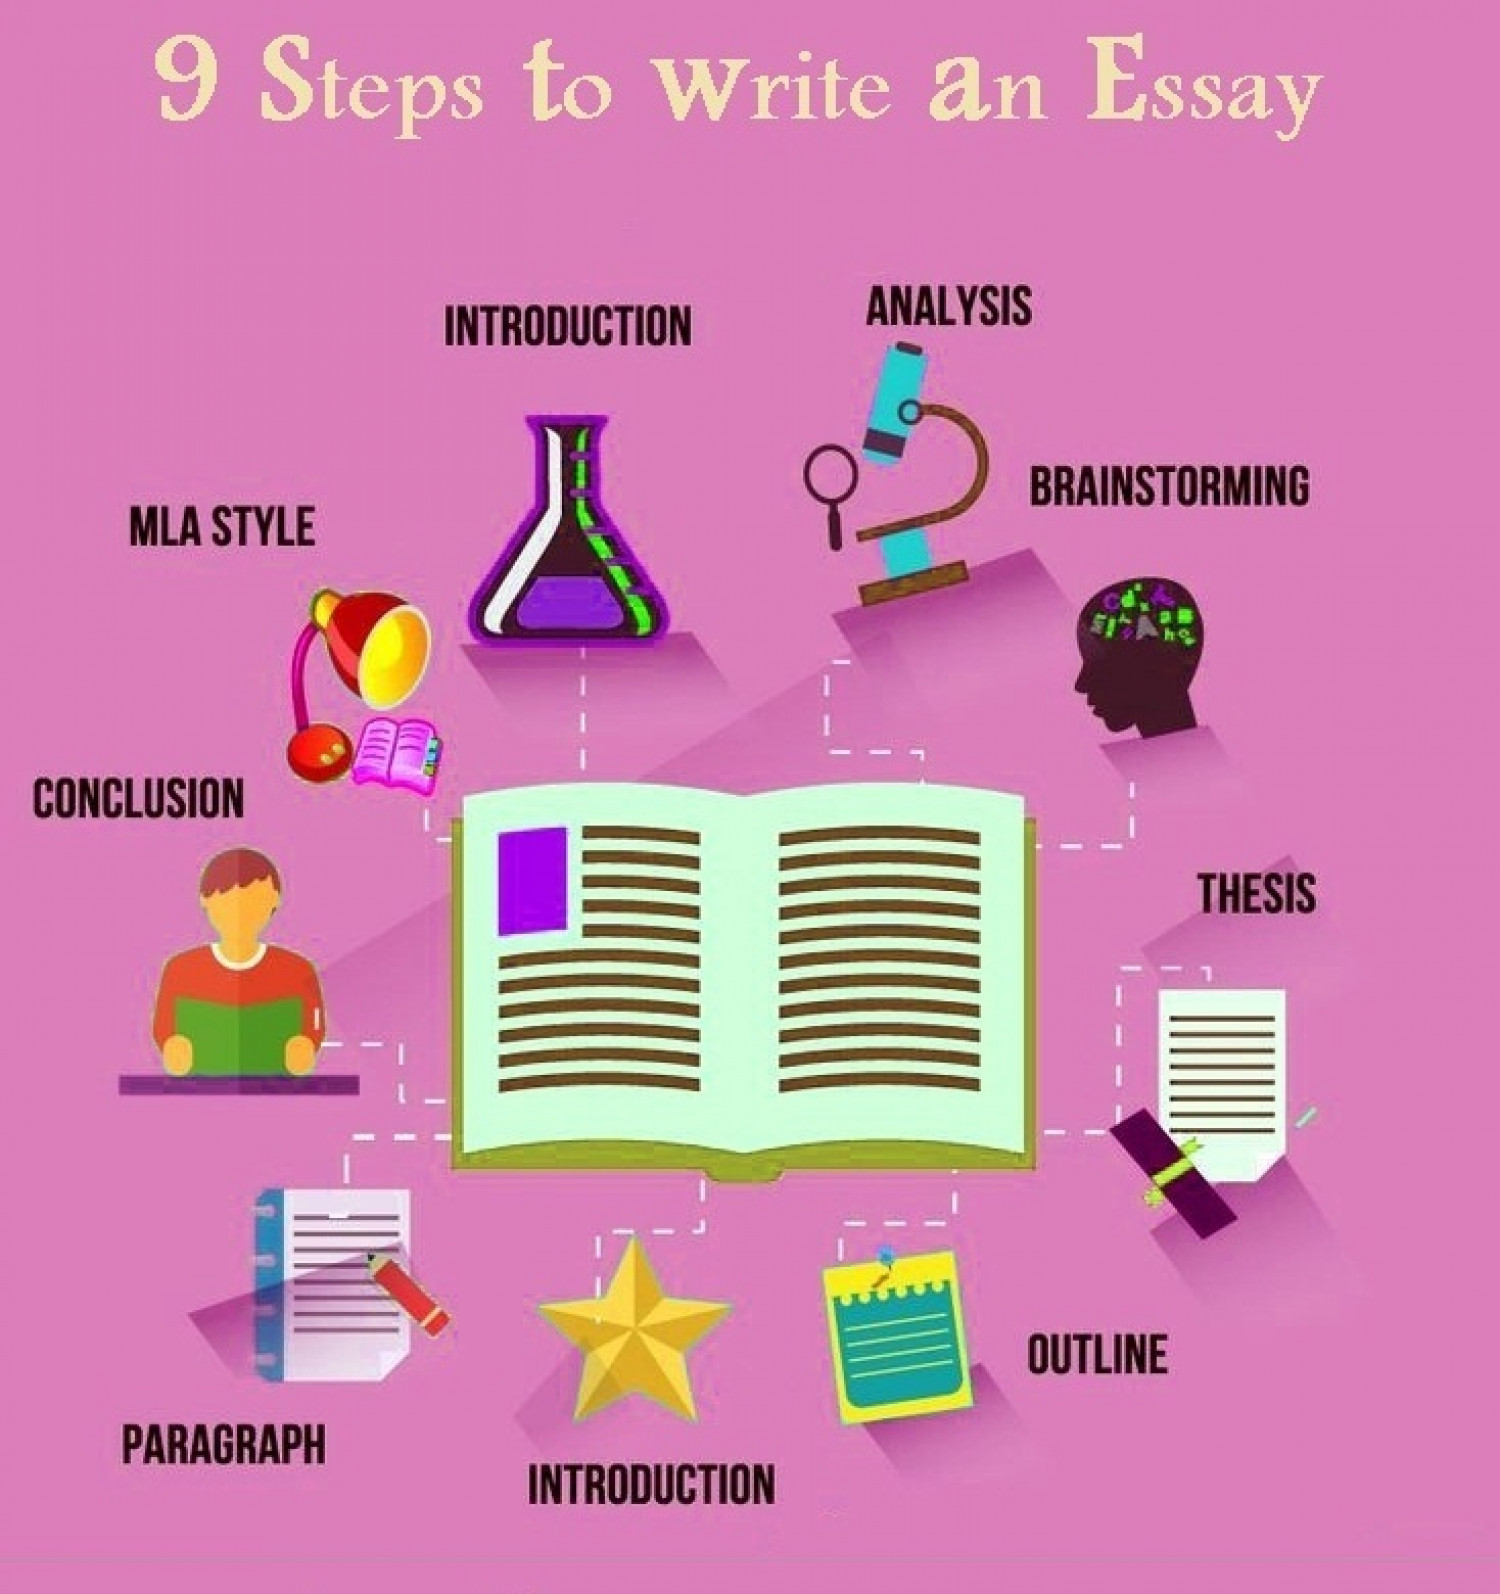 visual information essay Defining an informative essay it's sunday night and you're finding any way possible to procrastinate on your english homework assignment: to write an informative essay.